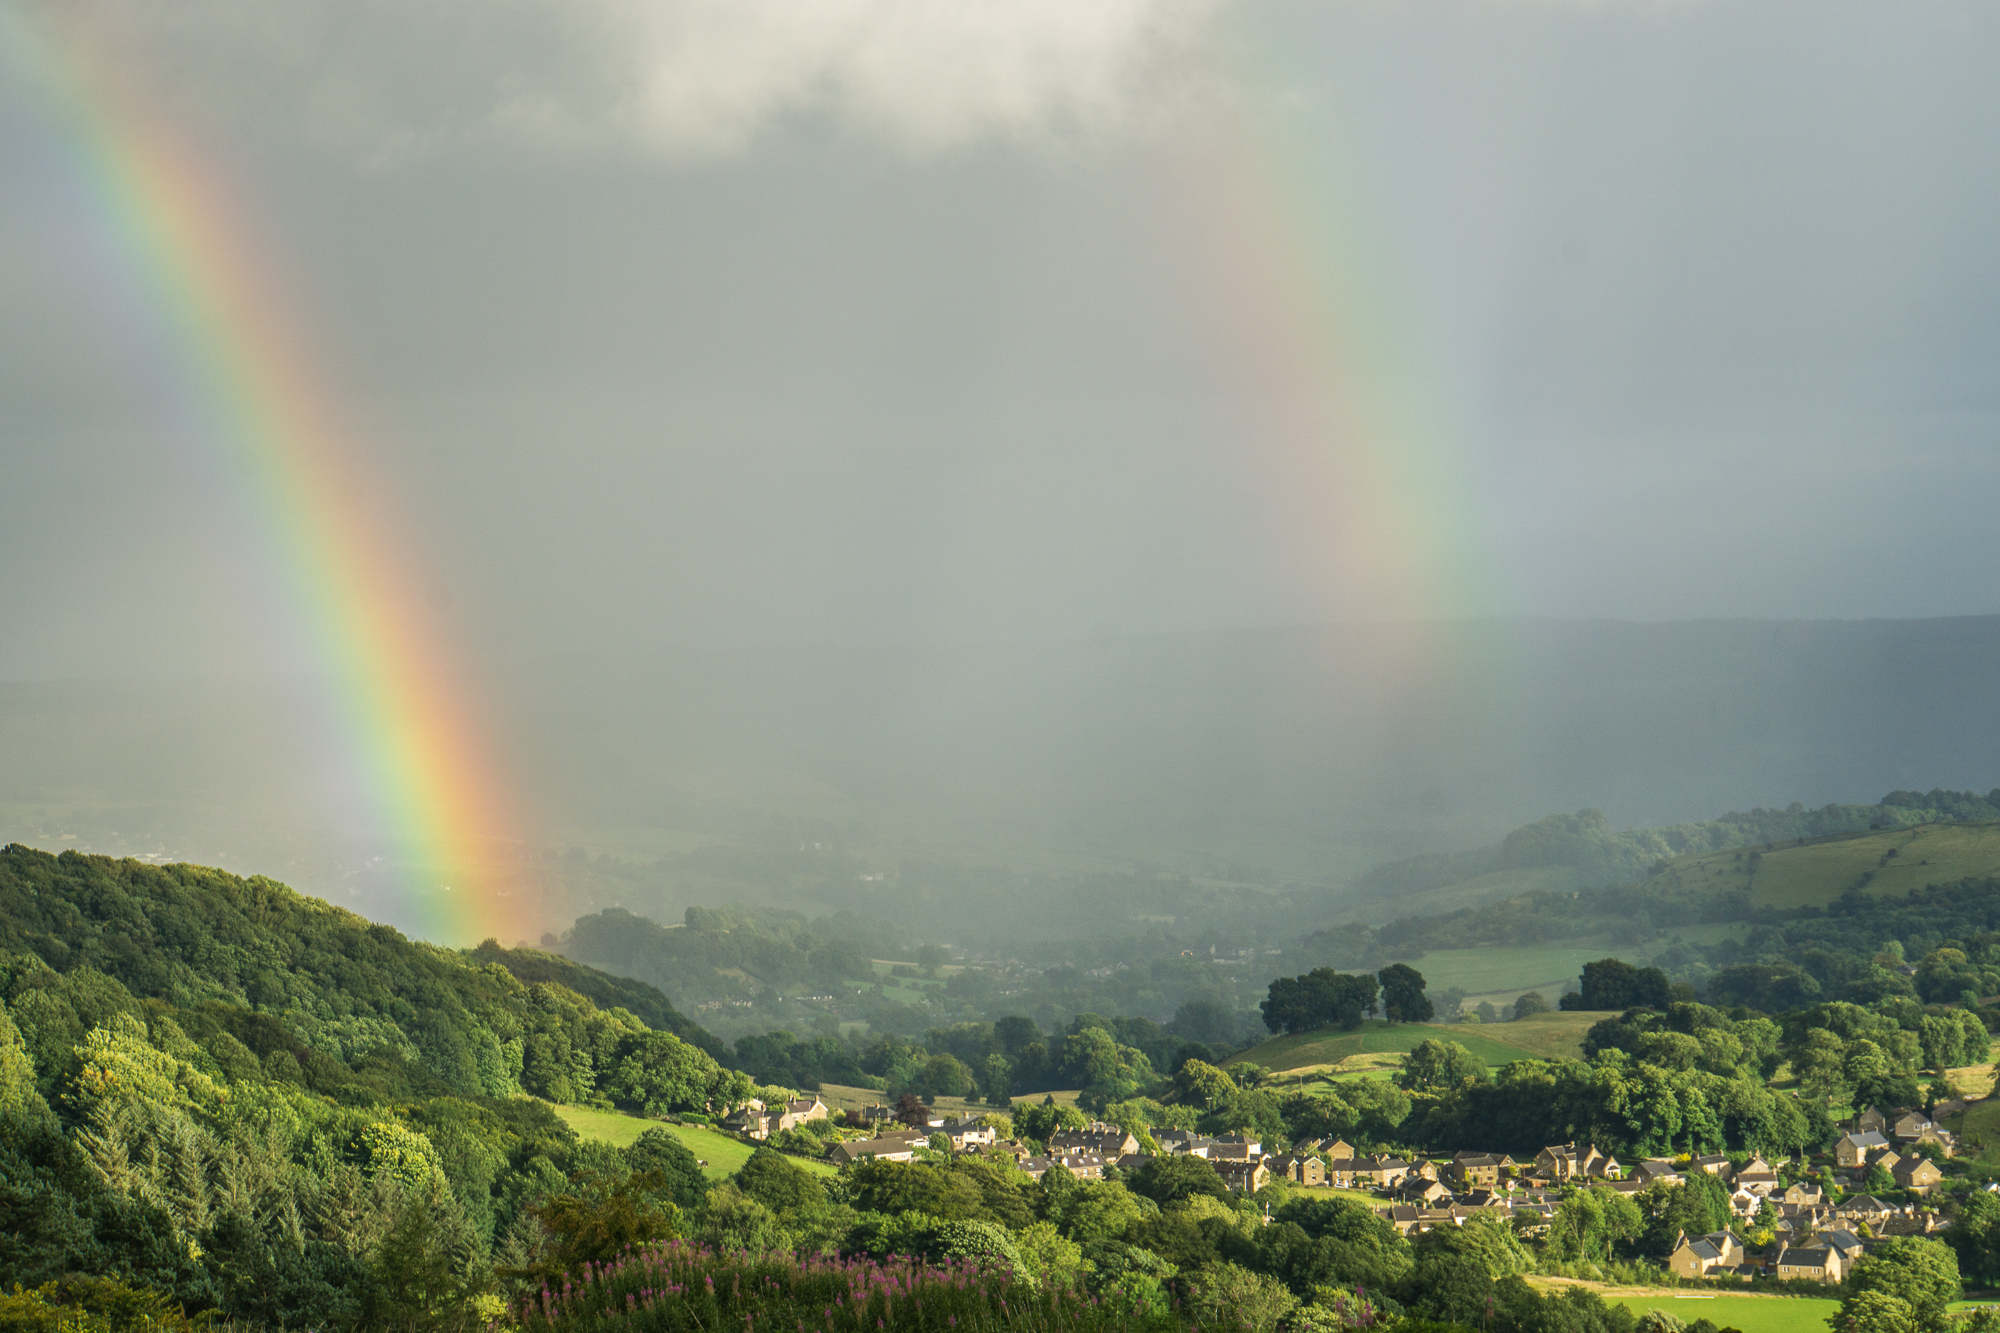 Double rainbow over the village of Eyam, Peak District